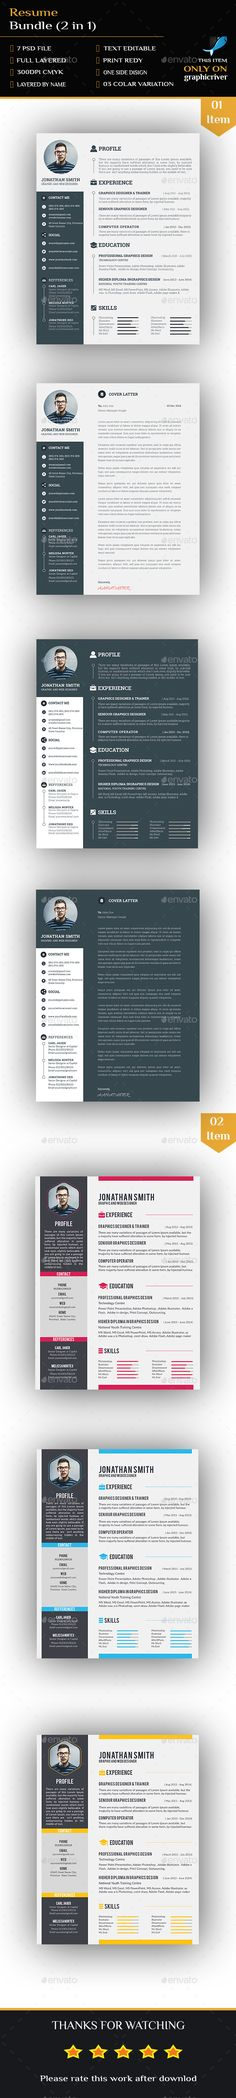 Resume Templates Bundle - 2 in1